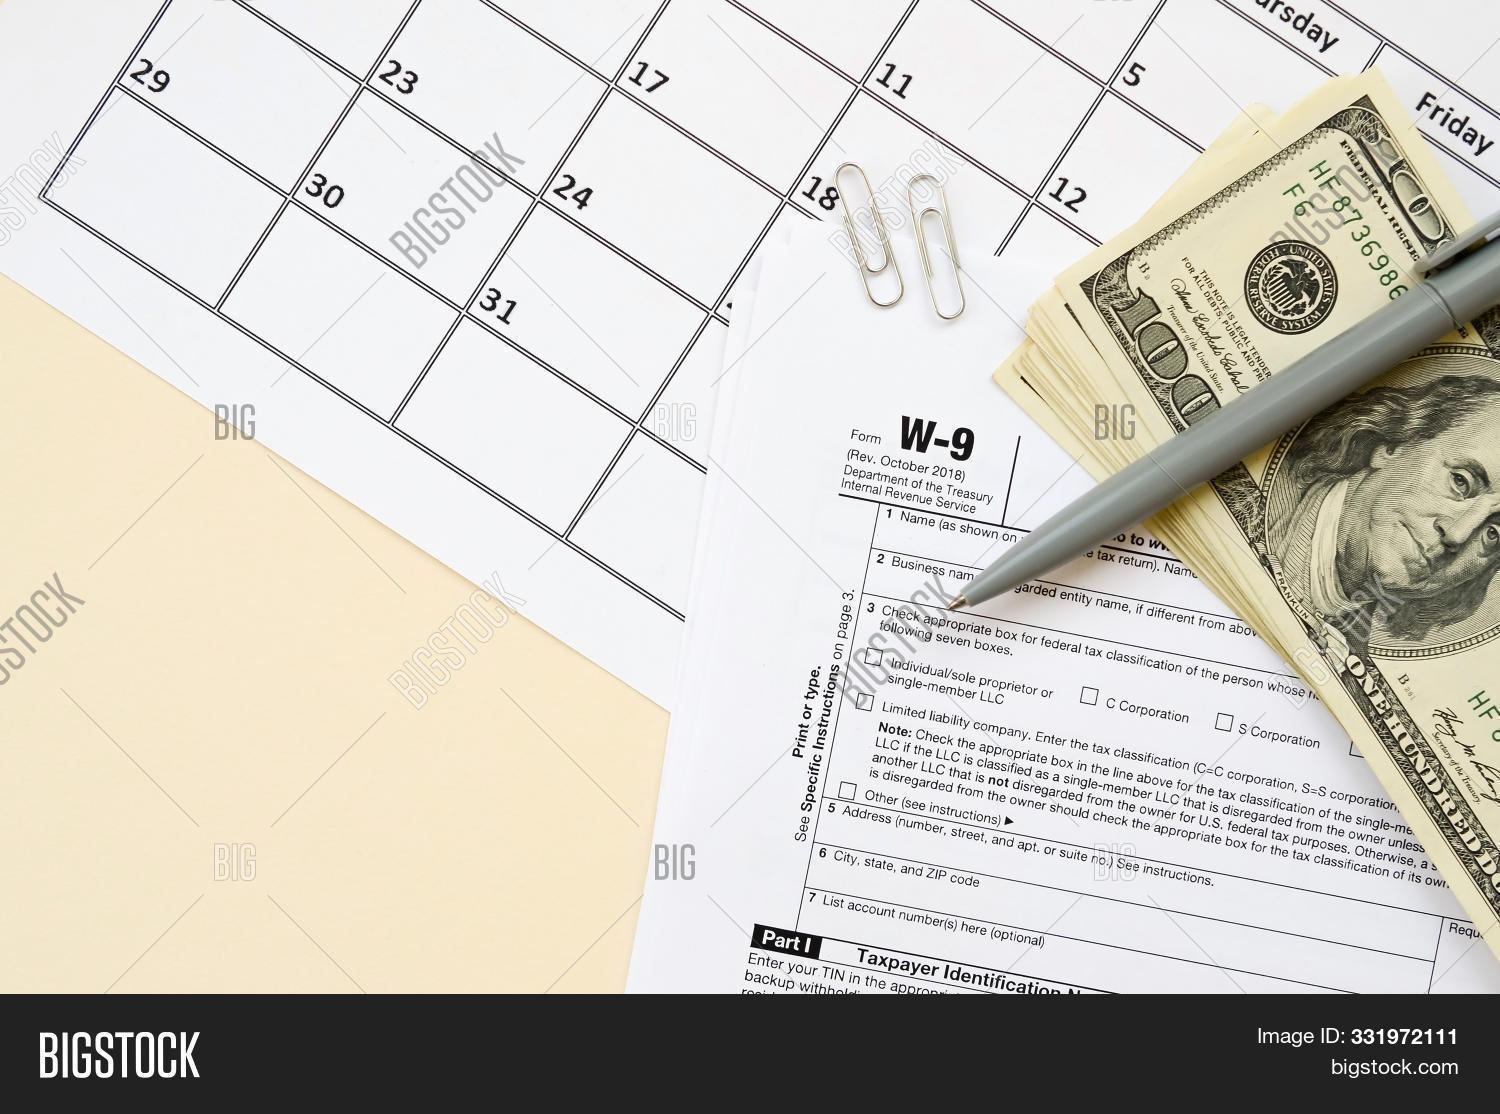 Irs Form W-9 Request Image & Photo (Free Trial) | Bigstock in Free W 9 Blank Form